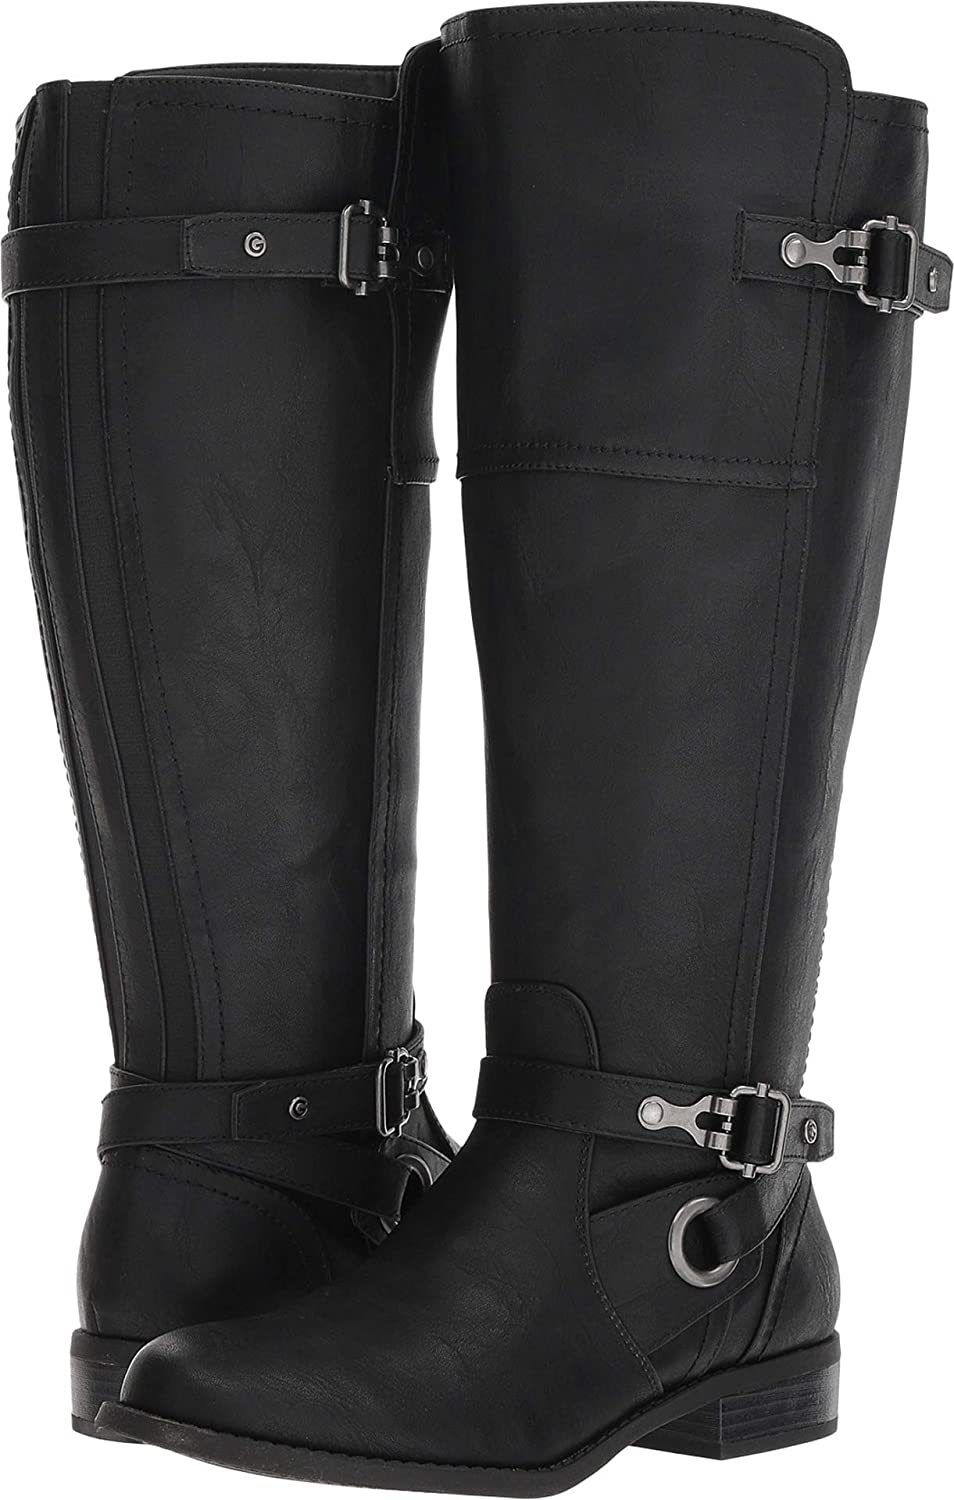 c15f11d7cc2 G by GUESS Womens Harvest Wide Calf